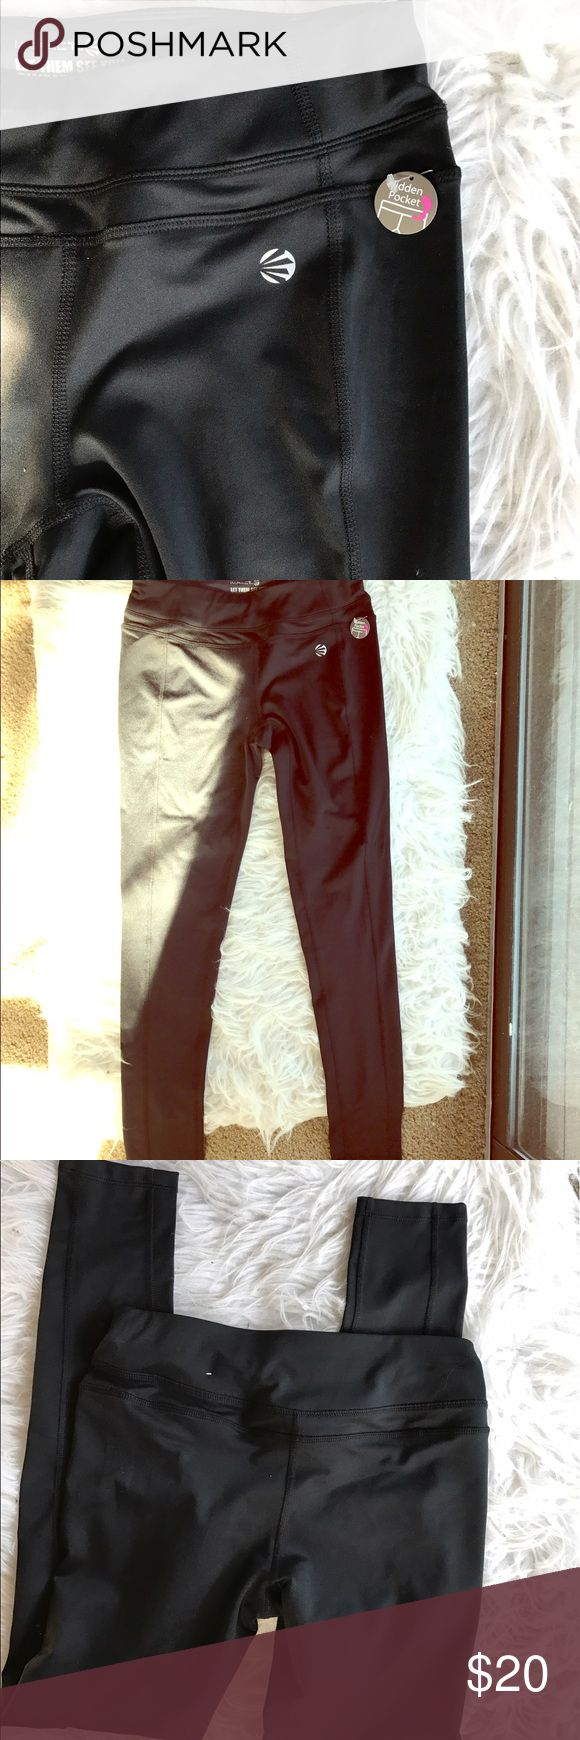 """🆕 ᎫᎥℓℓᎥΔП мᎥζℌΔΣℓᴤ workout pants nwt Cute and comfy! Hidden pocket. Price tag fell off but still has the """"hidden pocket"""" tag attached. Polyester and spandex blend. Brand is impact by Jillian Michaels. 🛍Bundles of 5 or more items get 50% off!-either make offer on the bundle or comment on each item you want and I'll make a separate listing!🛍 📣Buyer responsible for extra shipping when likely to be over 5 lbs 📣 ❌Absolutely no trades!❌ 🔵Color may vary in person!🔴 ◾️Serious buyers only!▪️…"""